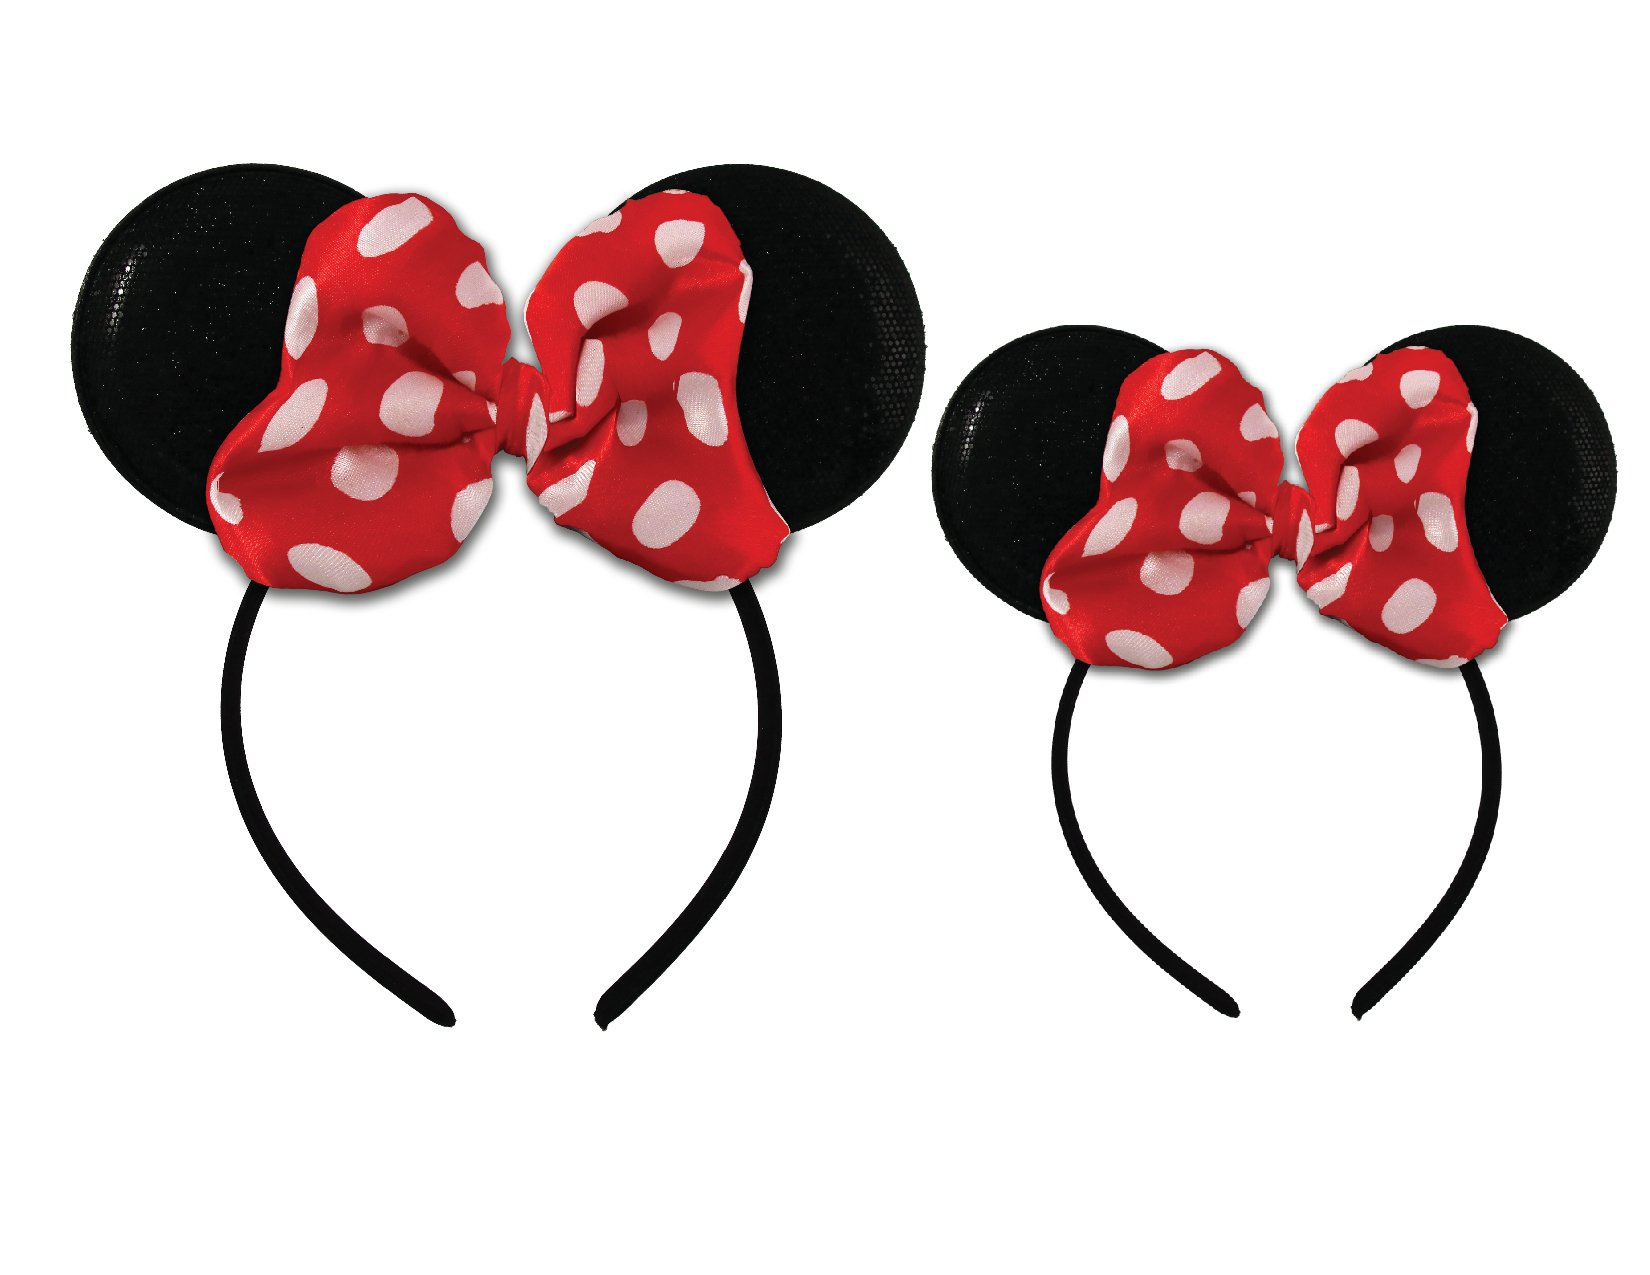 Disney Minnie Mouse Sparkled Ear Shaped Headband with Polka Dot Bow, Mommy and Me Set, Include One Adult Size and One for Little Girl Age 2-7 by Disney